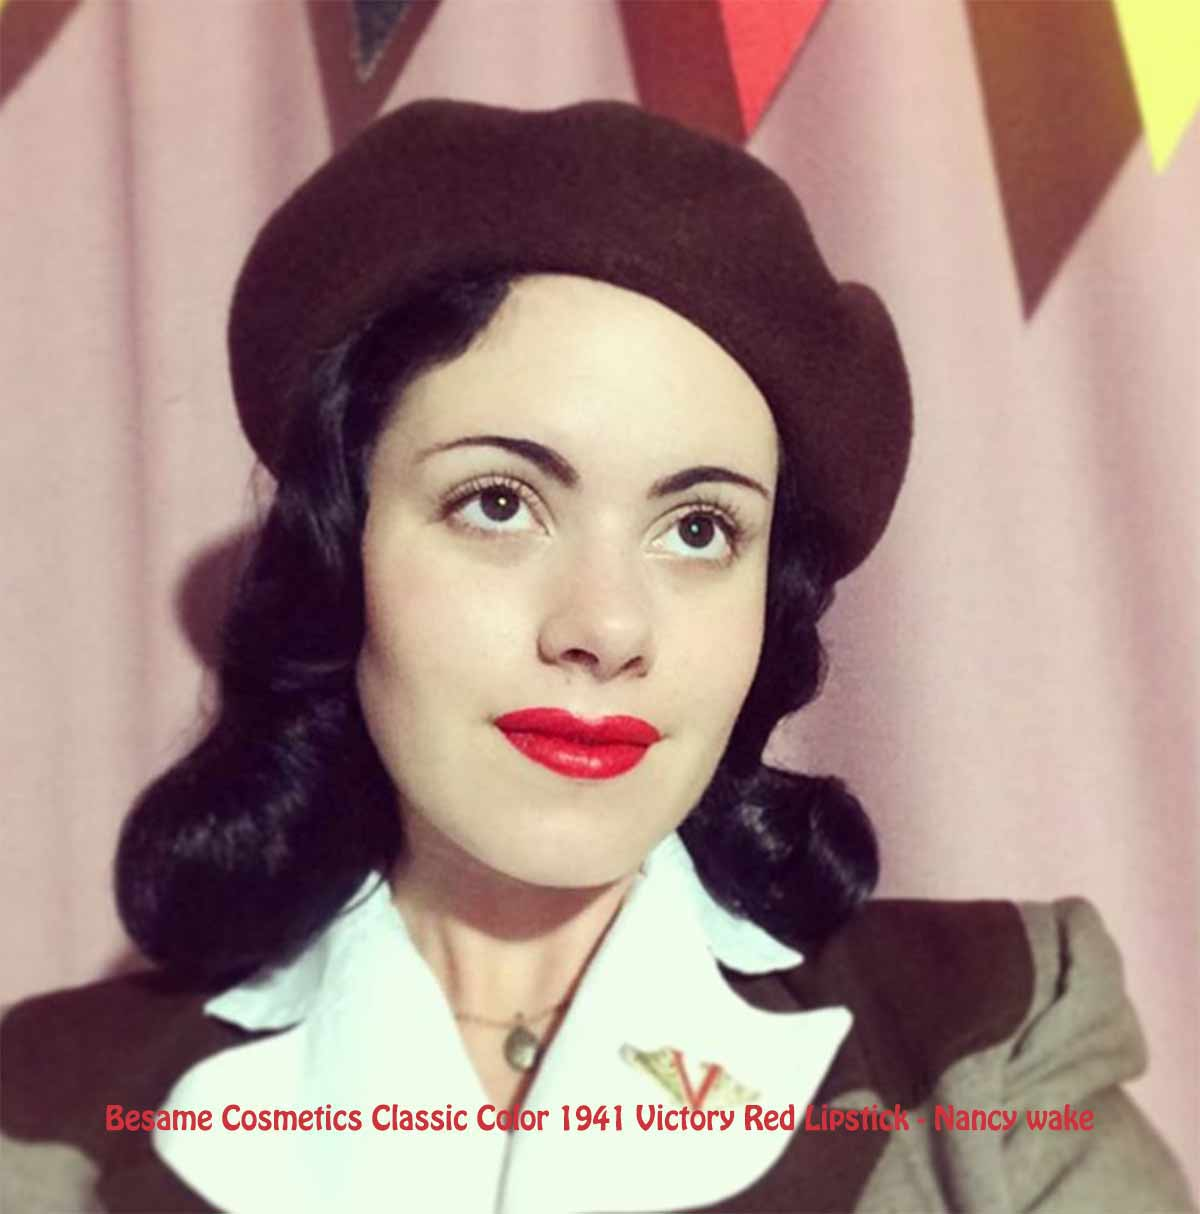 Classic-Color-1941-Victory-Red-Lipstick-Besame-Cosmetics4.jpg